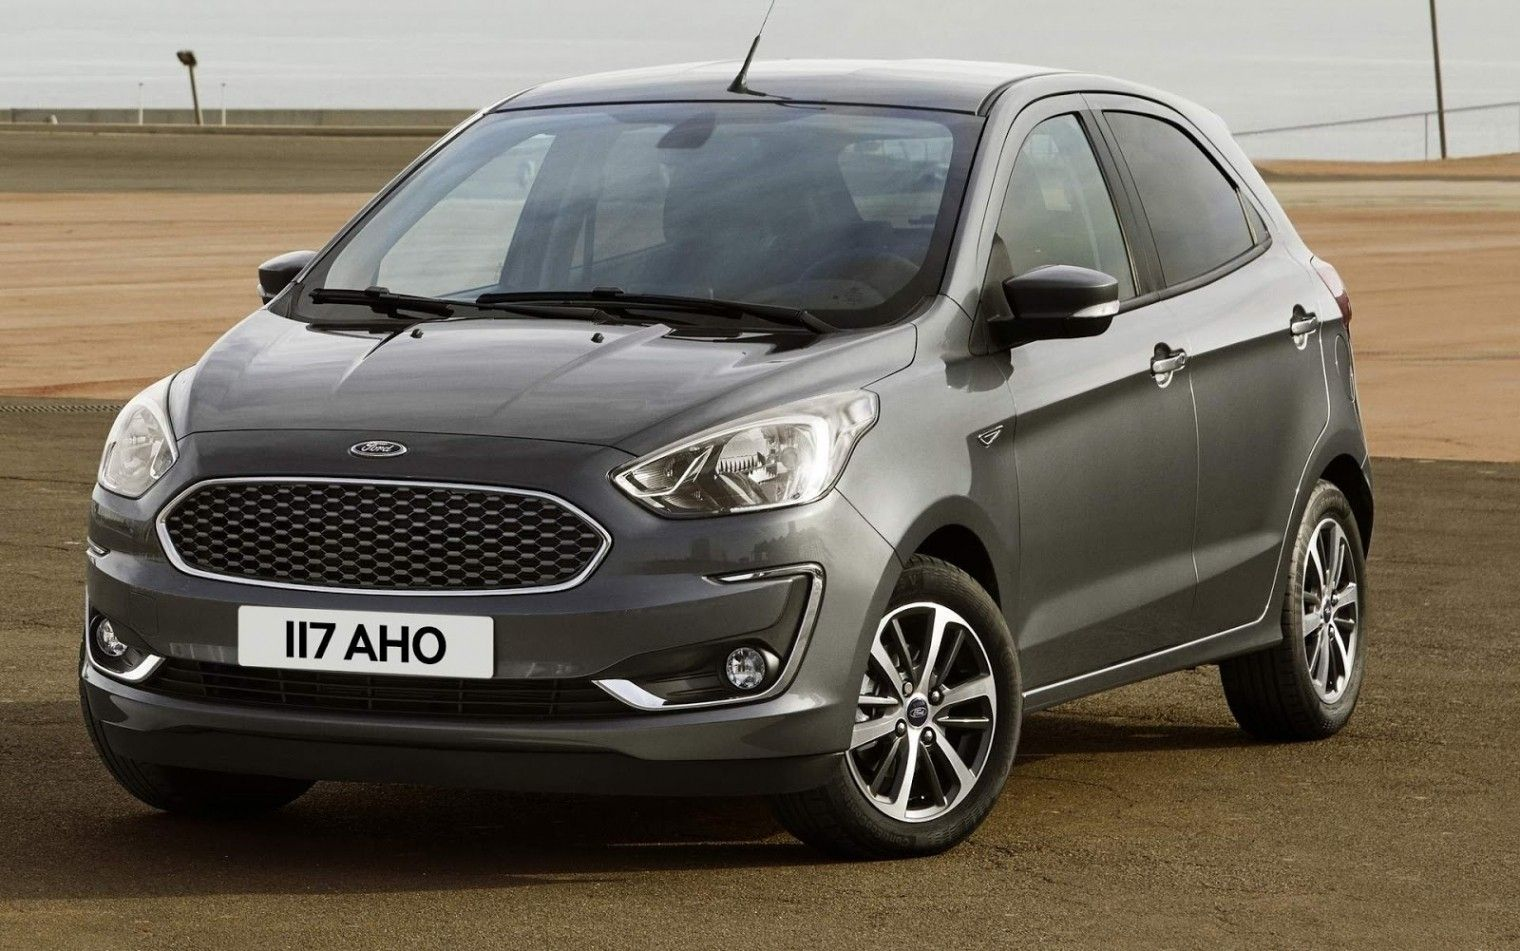 2019 Ford Ka New Review Car Gallery 2019 Ford Ford Car